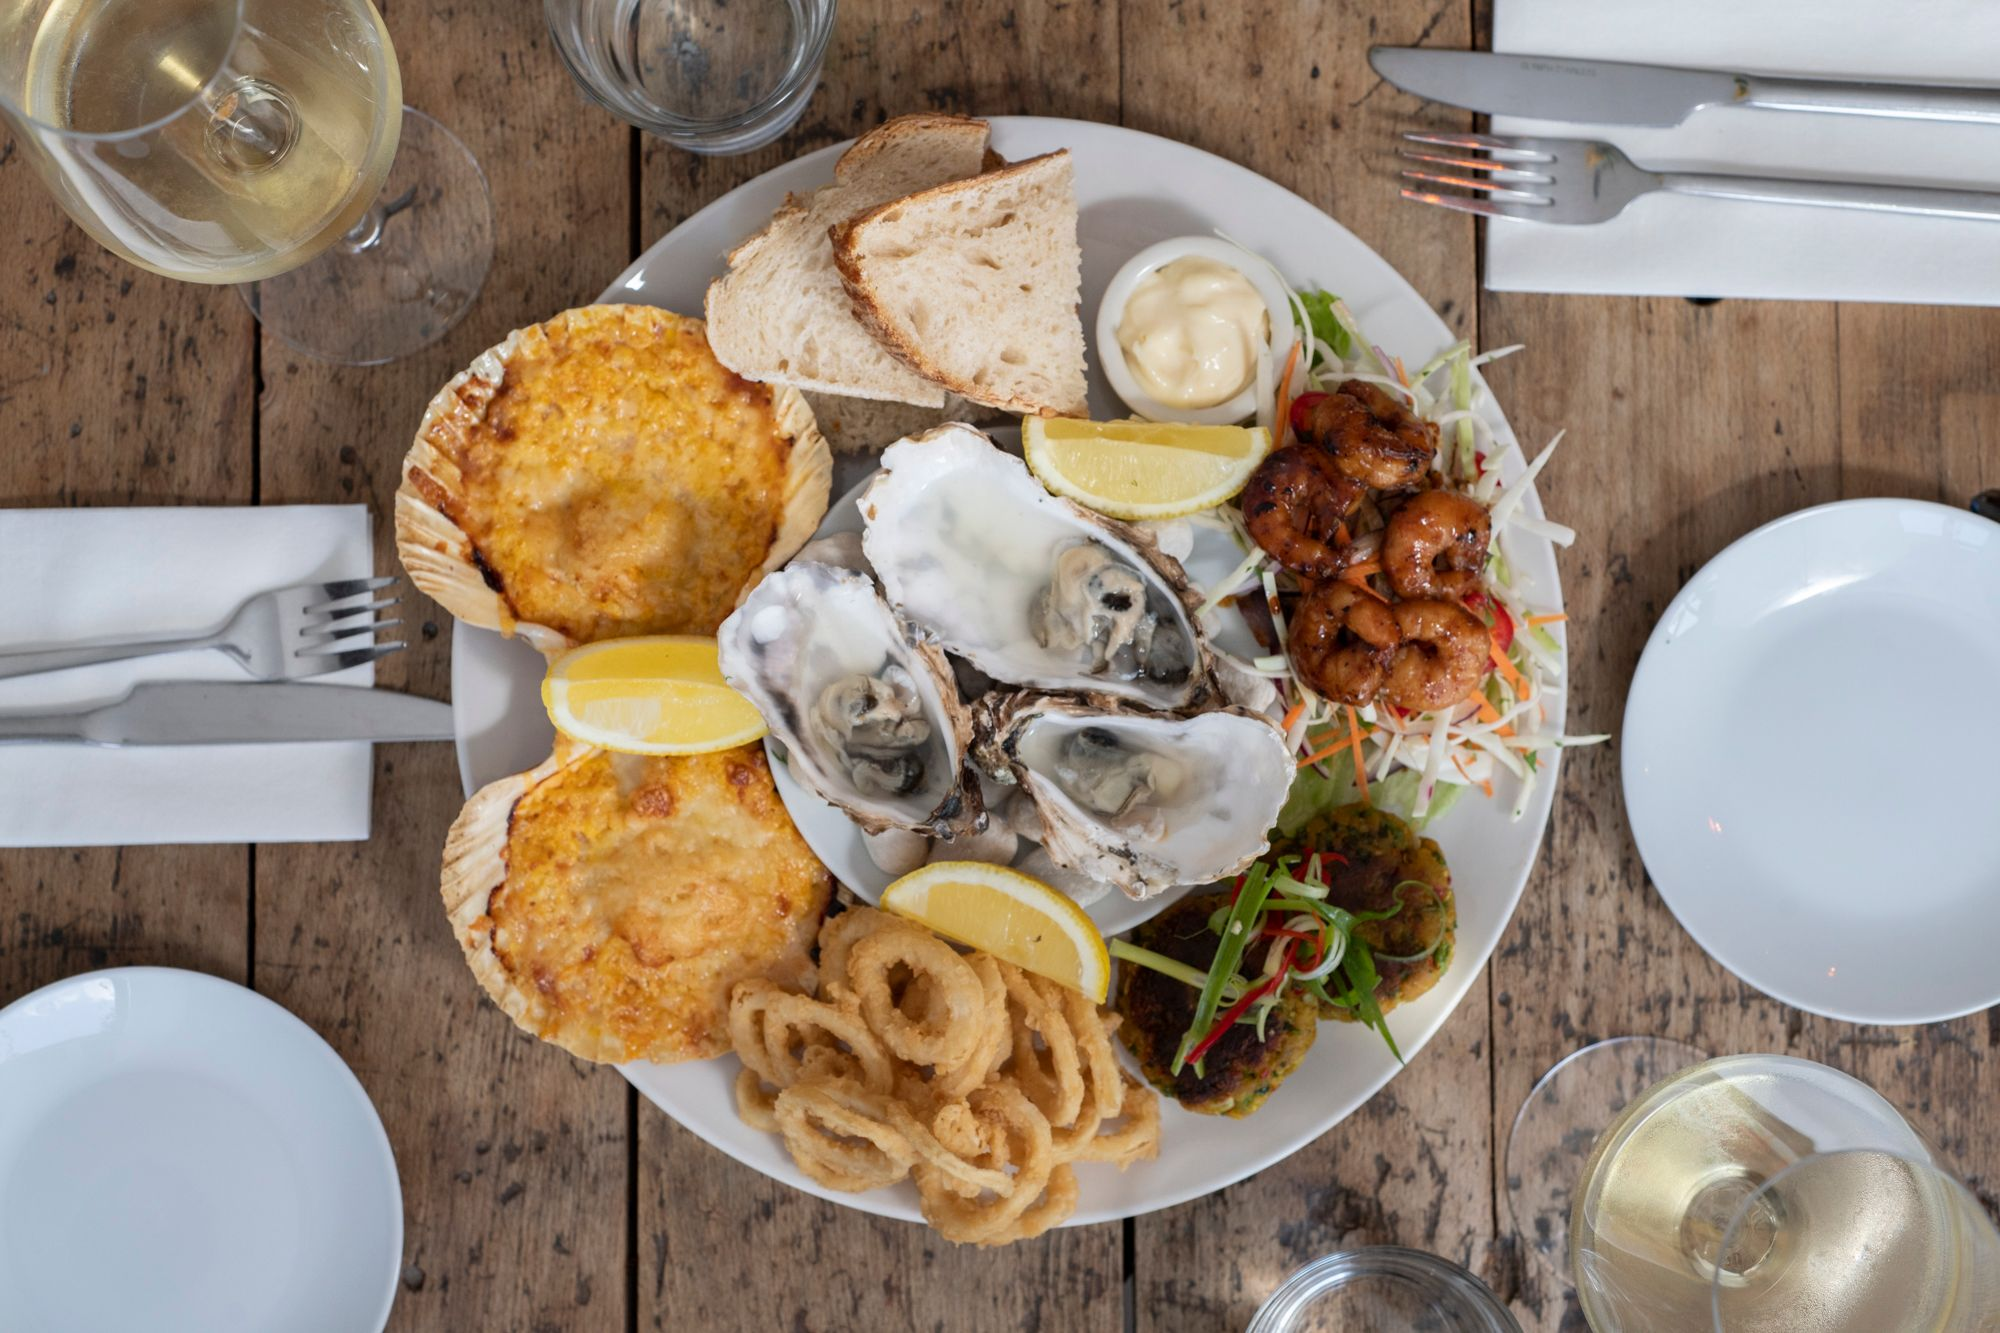 table laid out with big plate with 3 Irish rock oysters on, onion rings, slice bread and white wine on the side